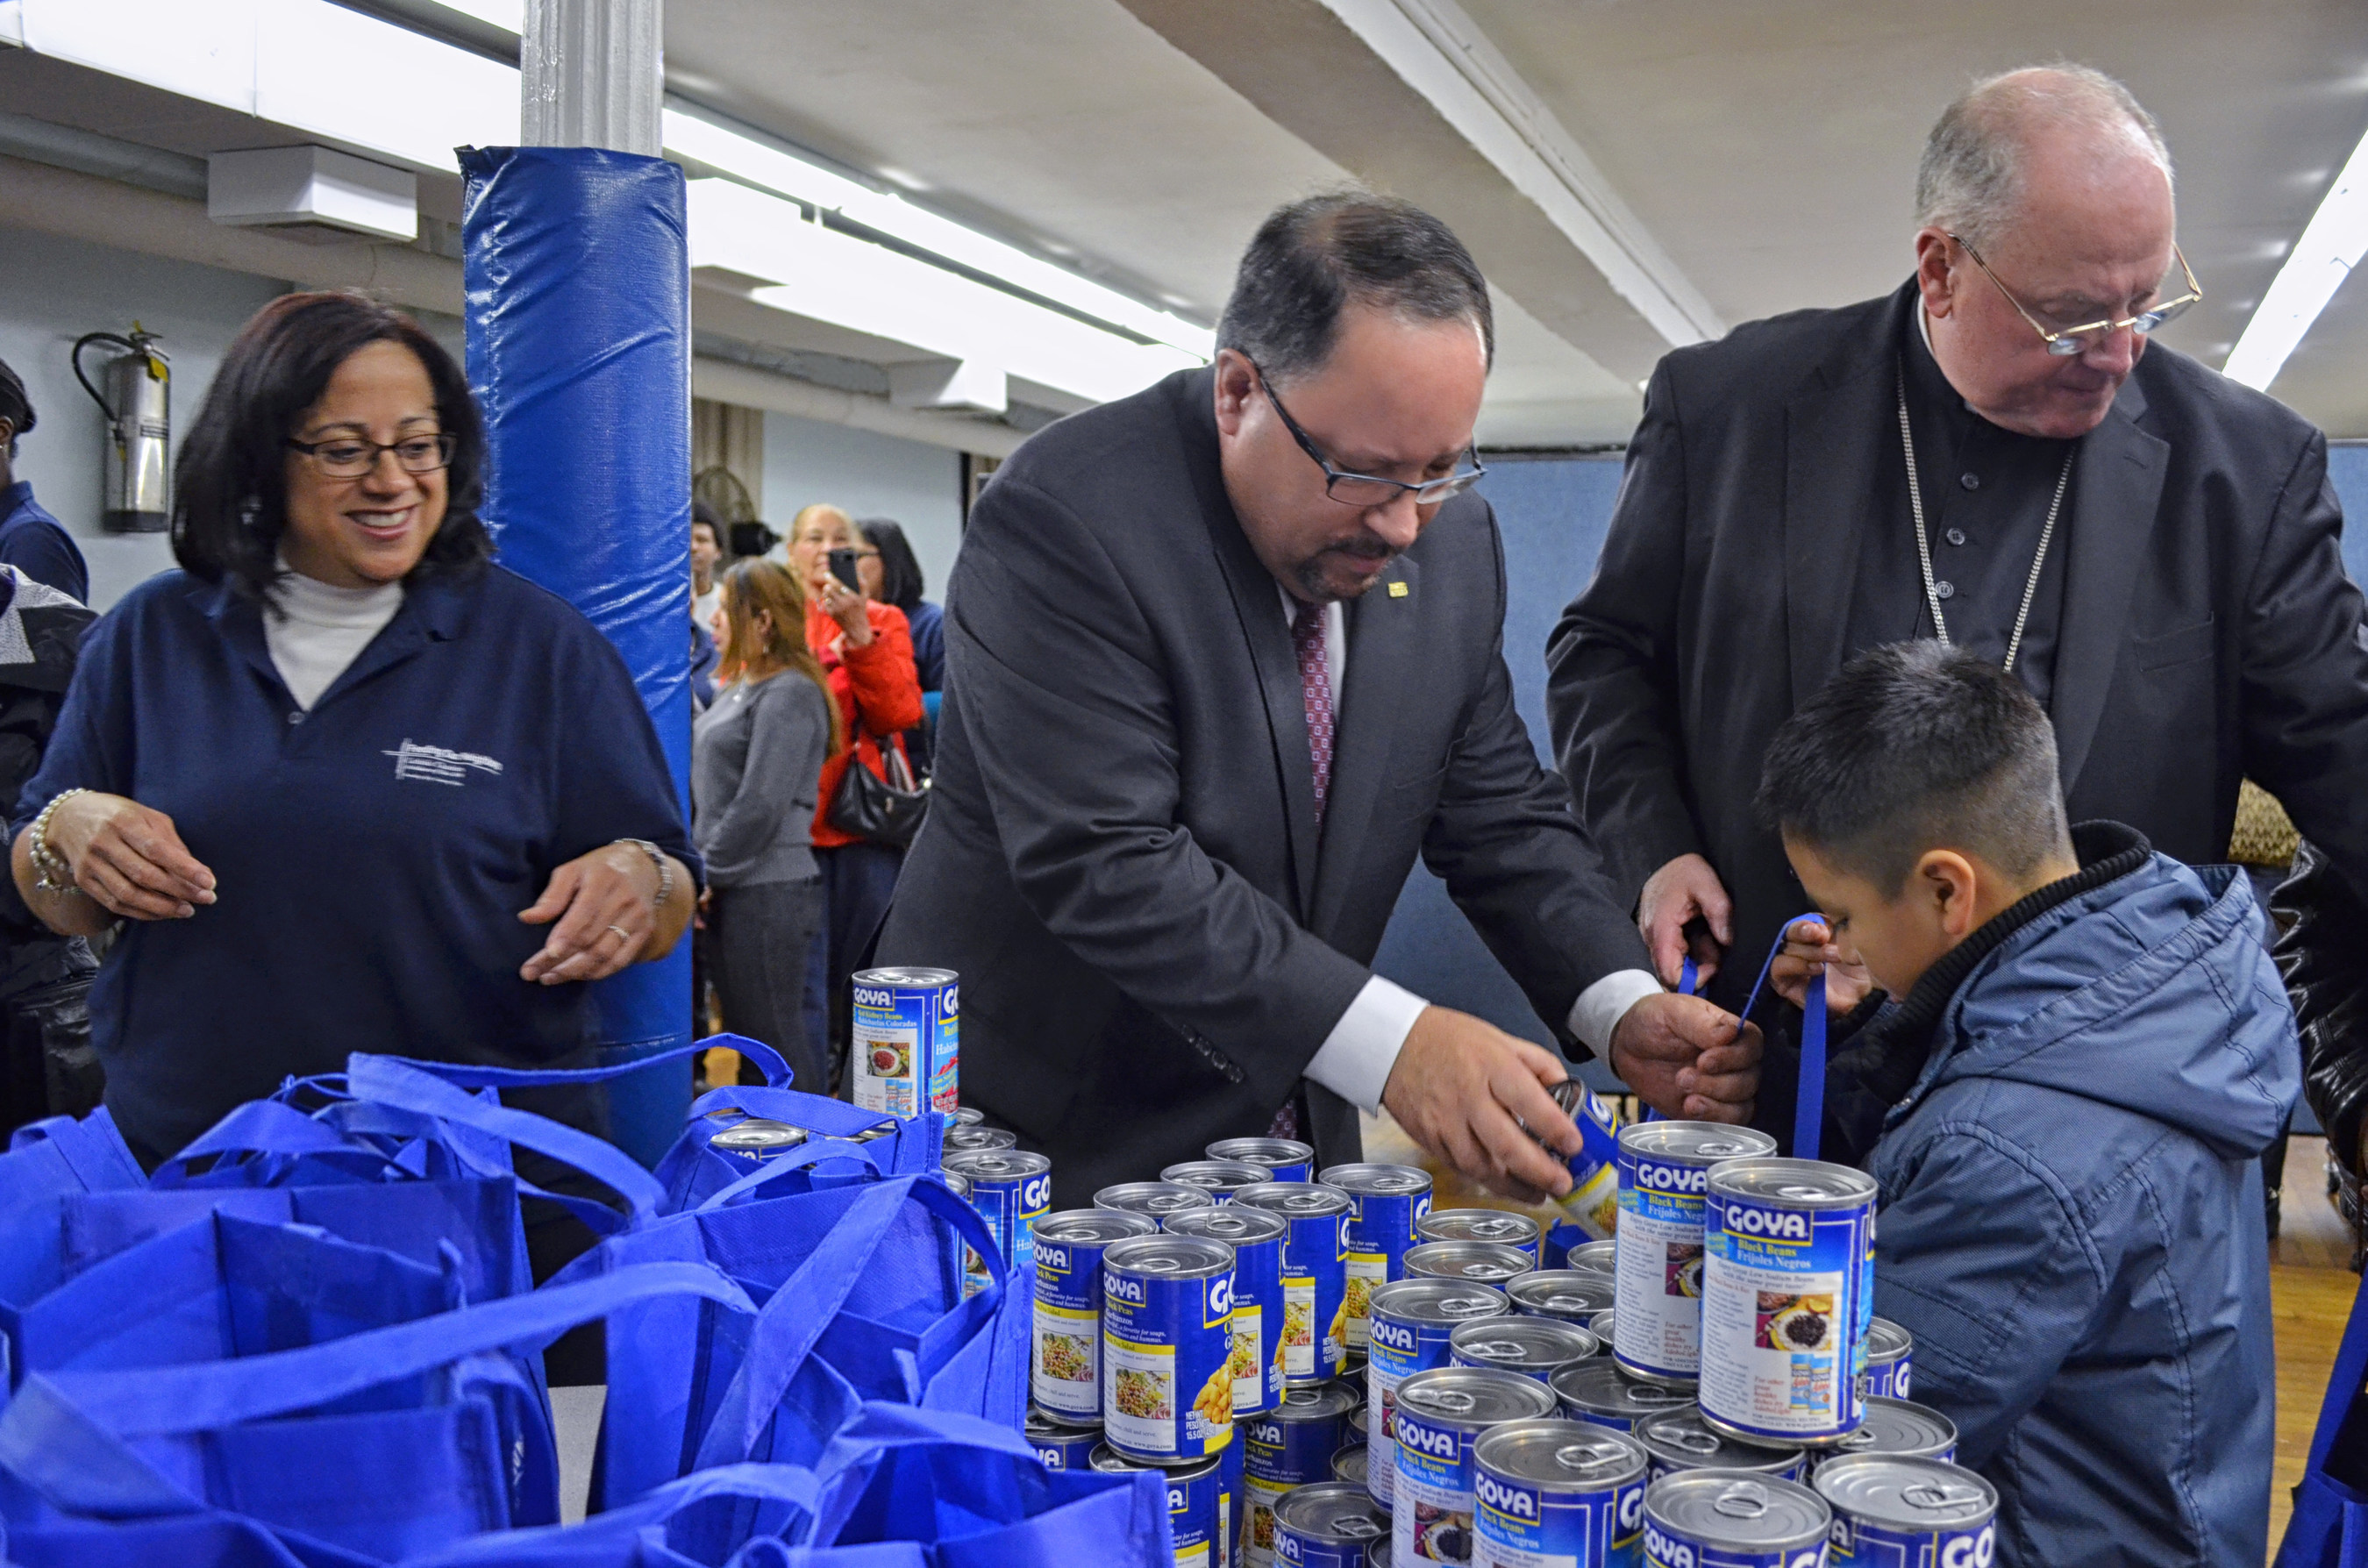 President Bob Unanue of Goya Foods, Cardinal Dolan and Catholic Charities of NY help pack 300,000 pounds of ...